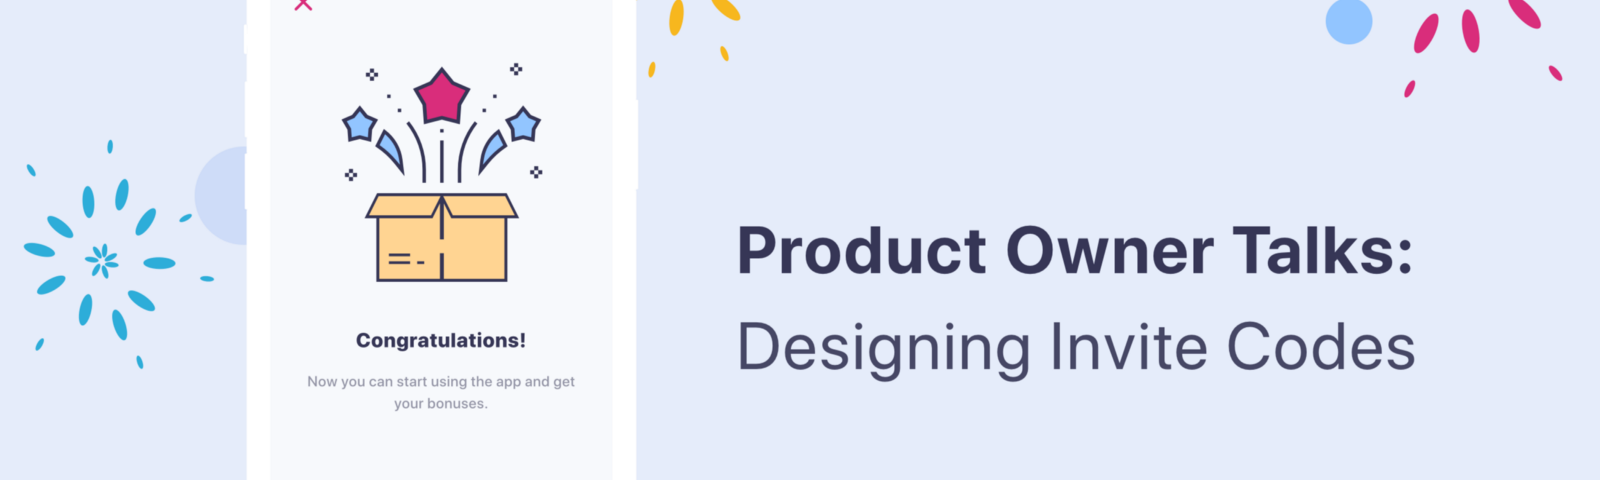 Tips for product owners about designing invite codes.